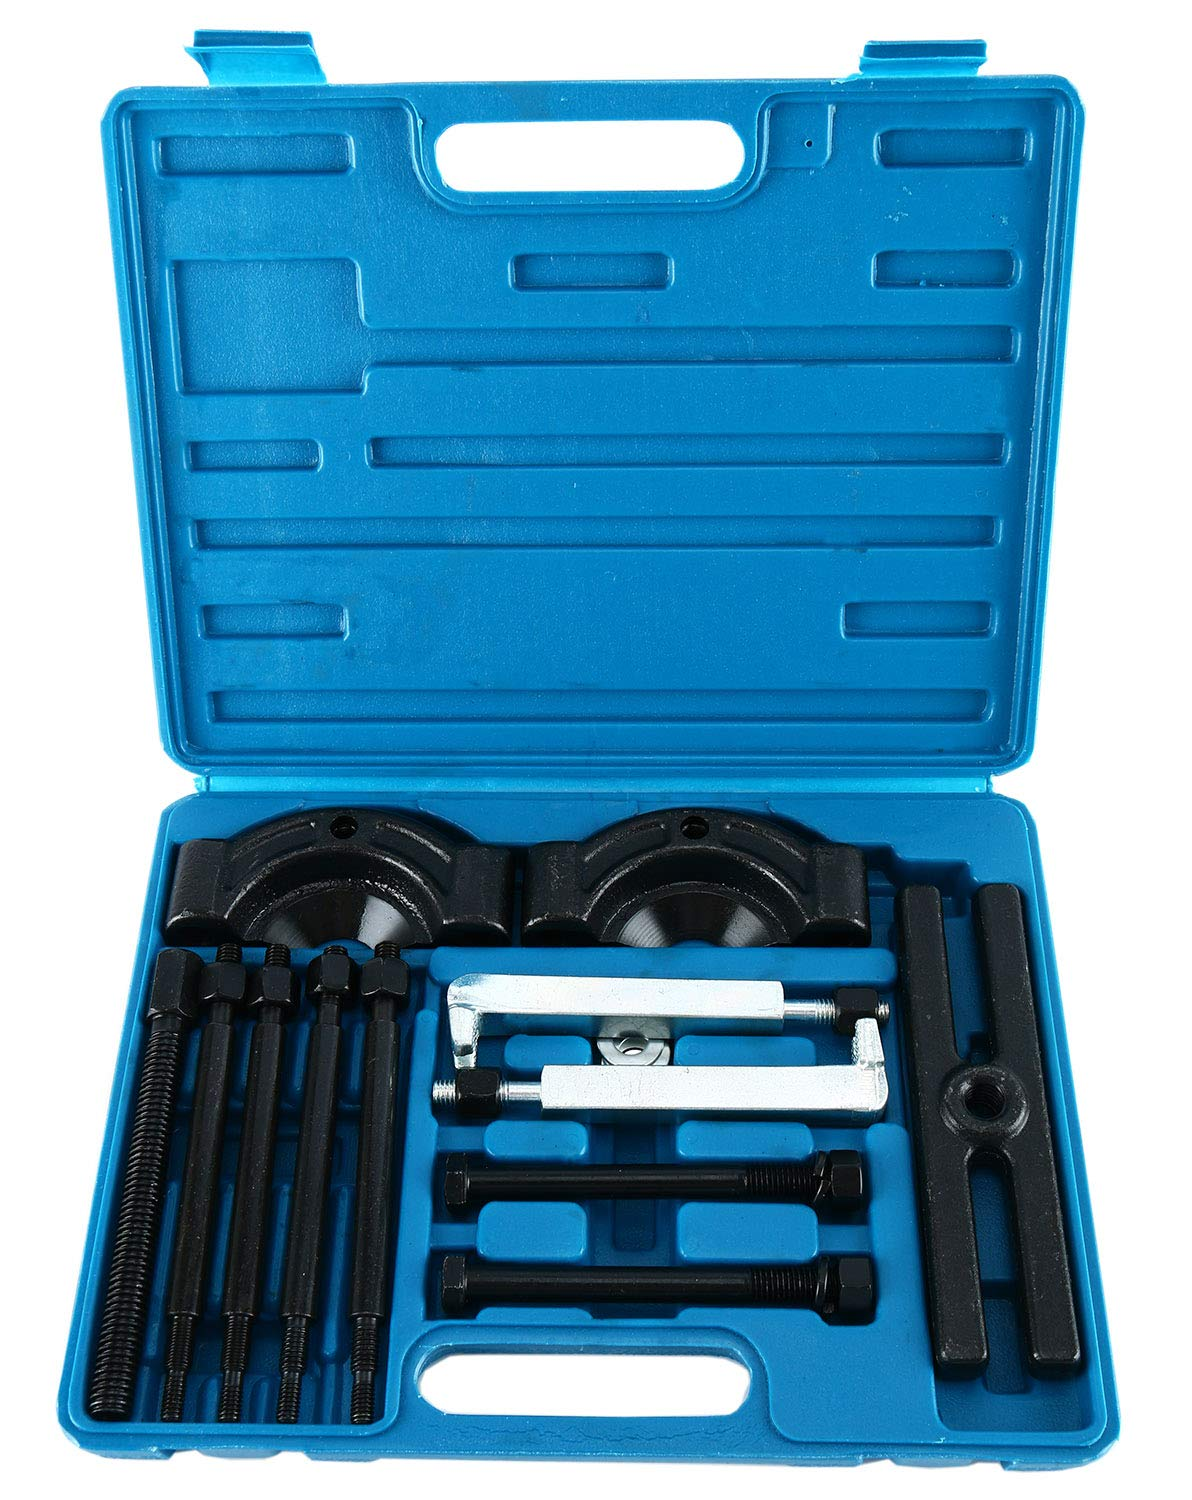 Heavy Duty 14-Piece Gear Puller and Bearing Splitter Tool Kit freebirdtrading